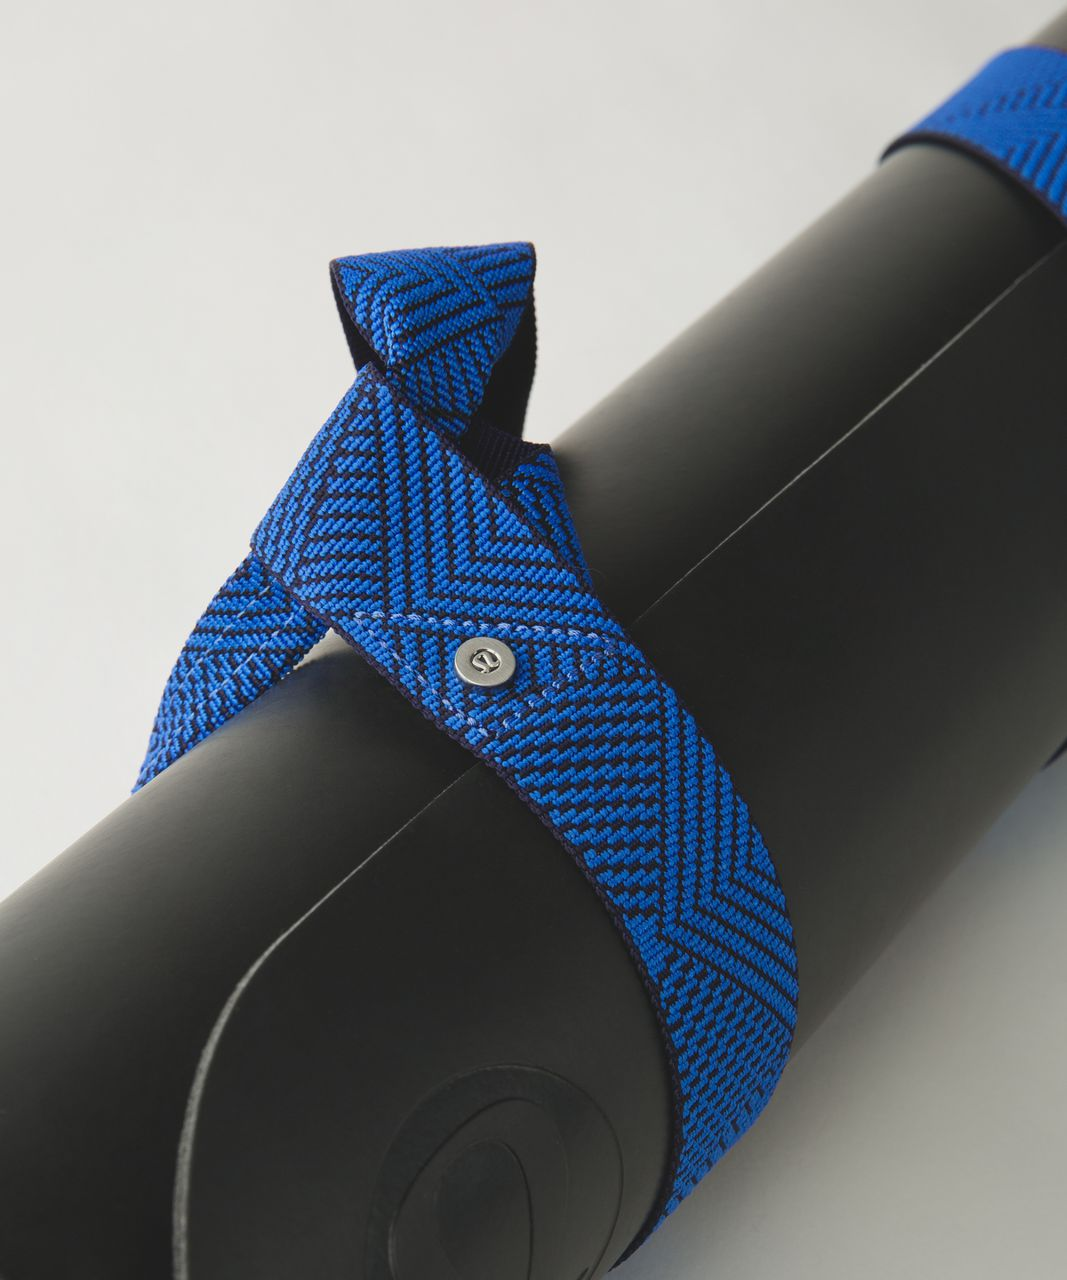 Lululemon Loop It Up Mat Strap - Hero Blue / Lakeside Blue